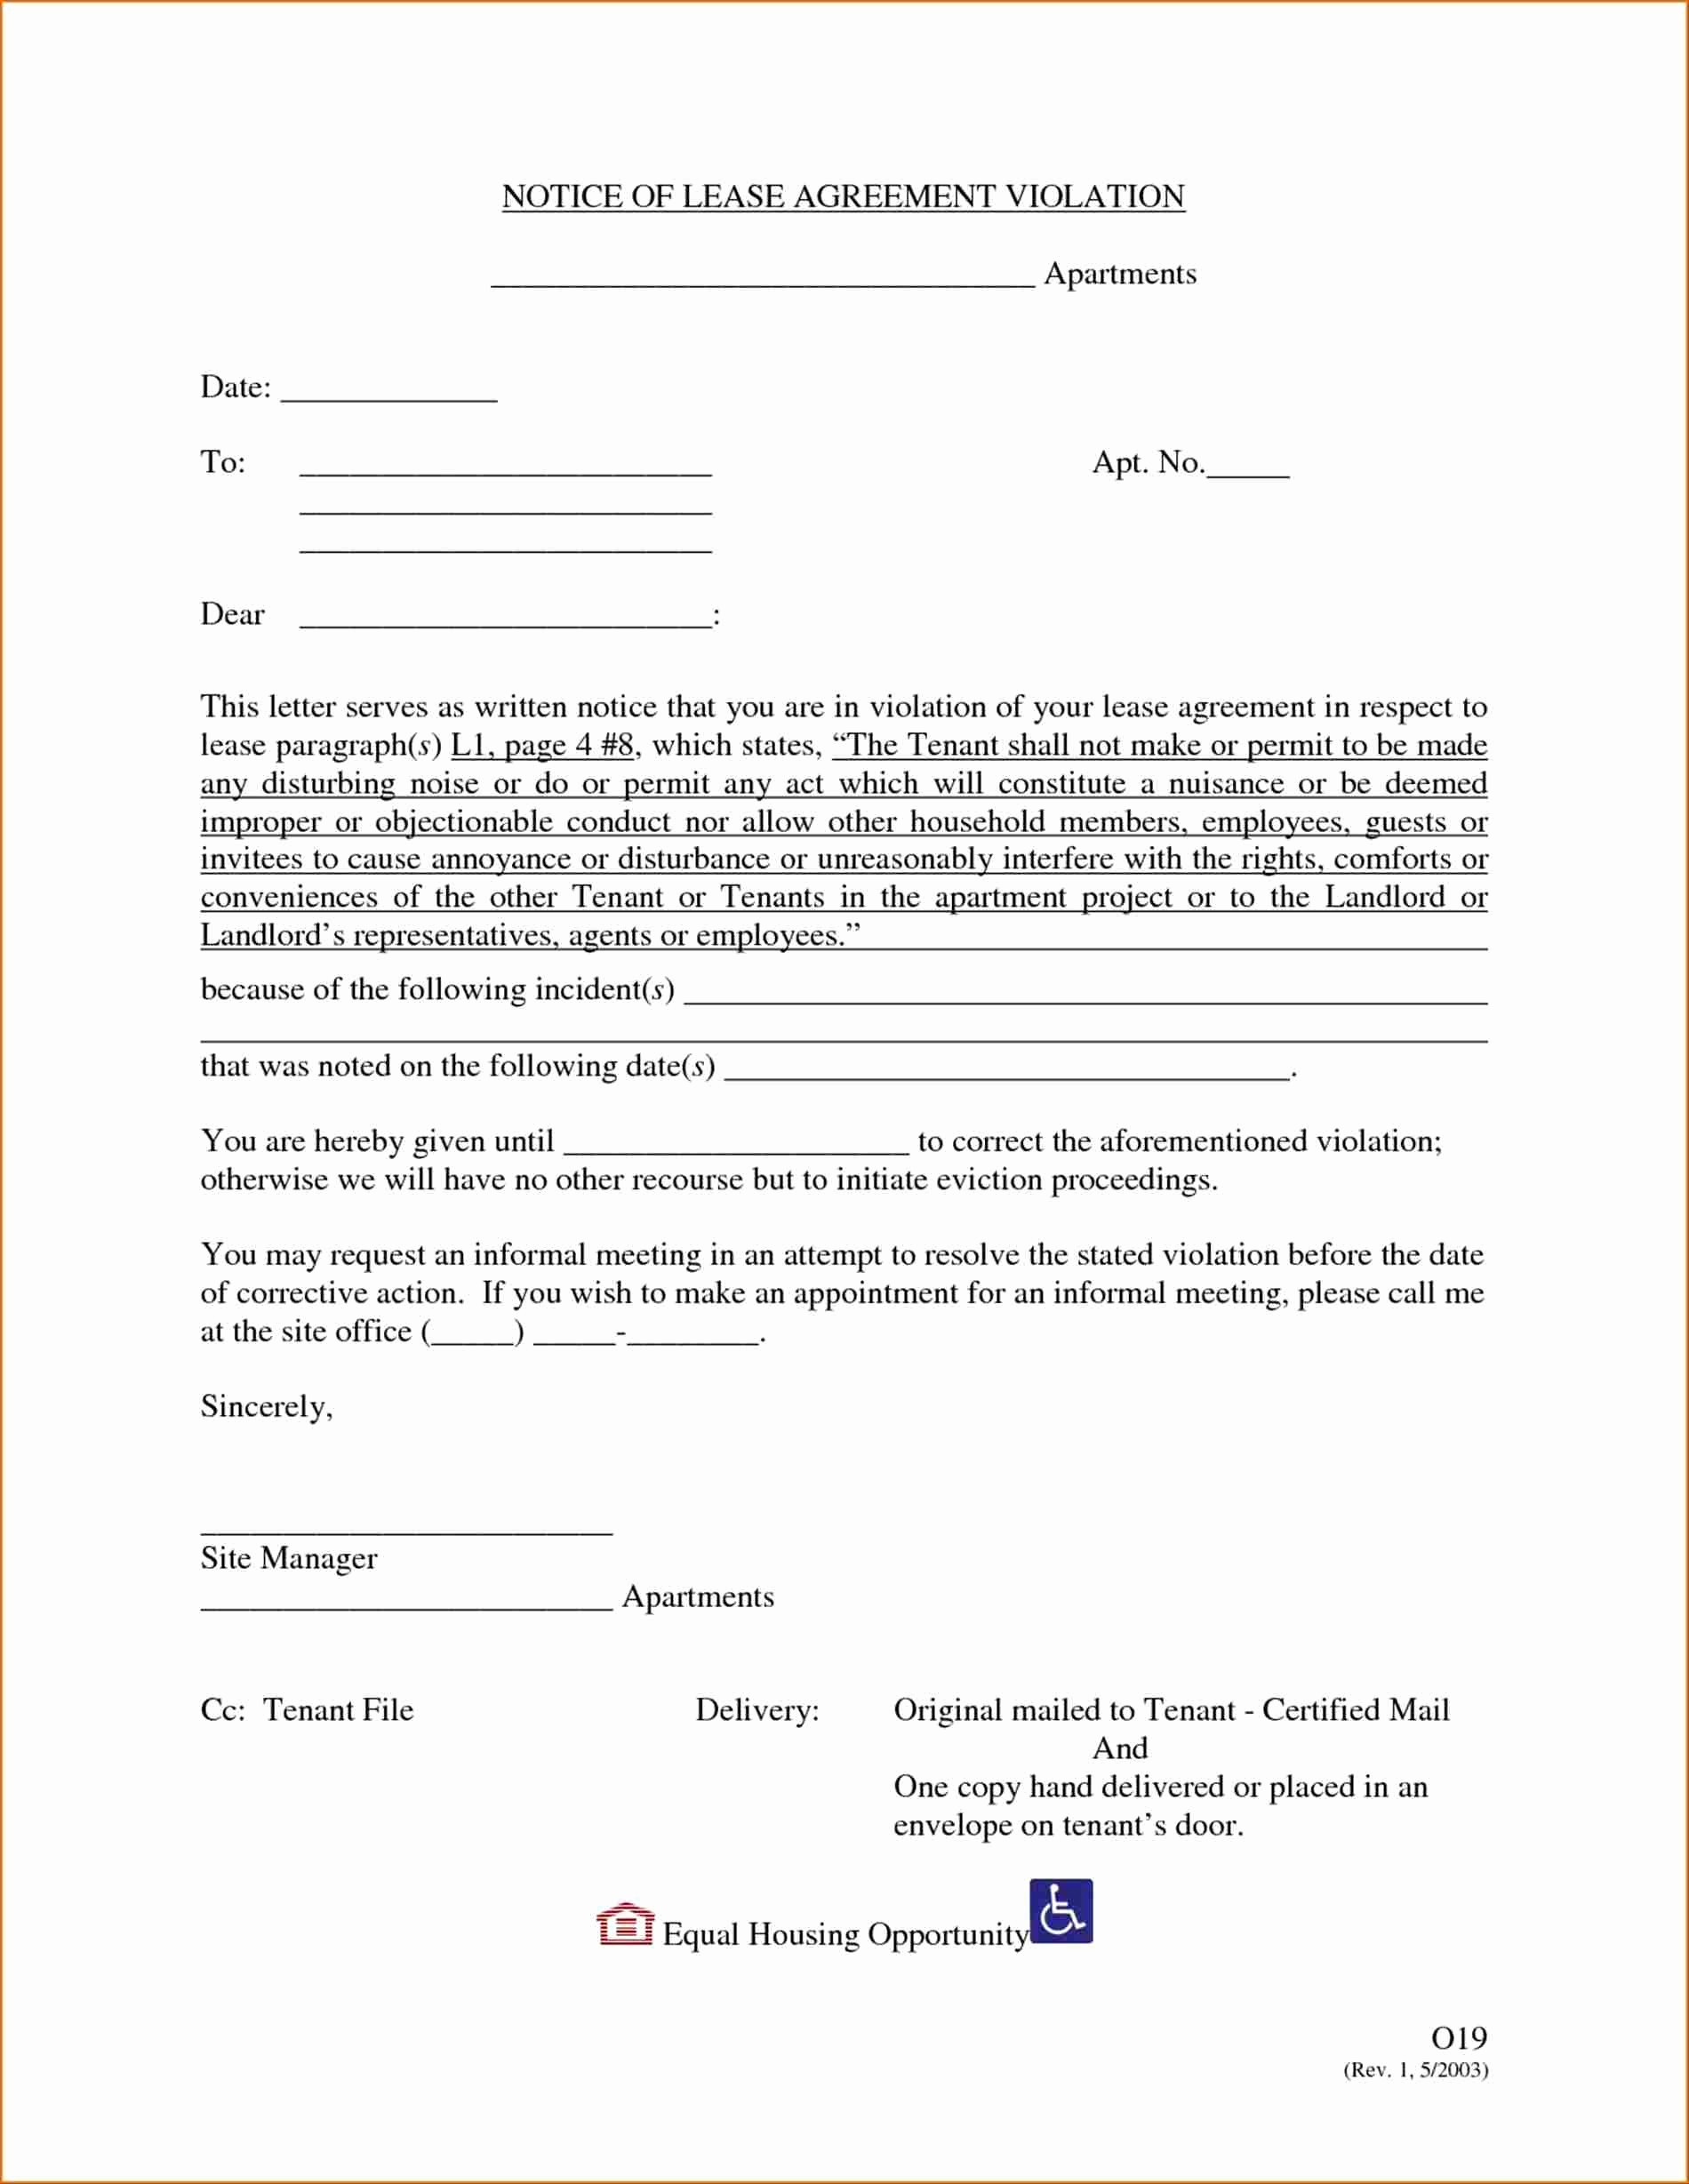 Notice Of Lease Violation Template New Letter to Correct Violations Lease Agreement S